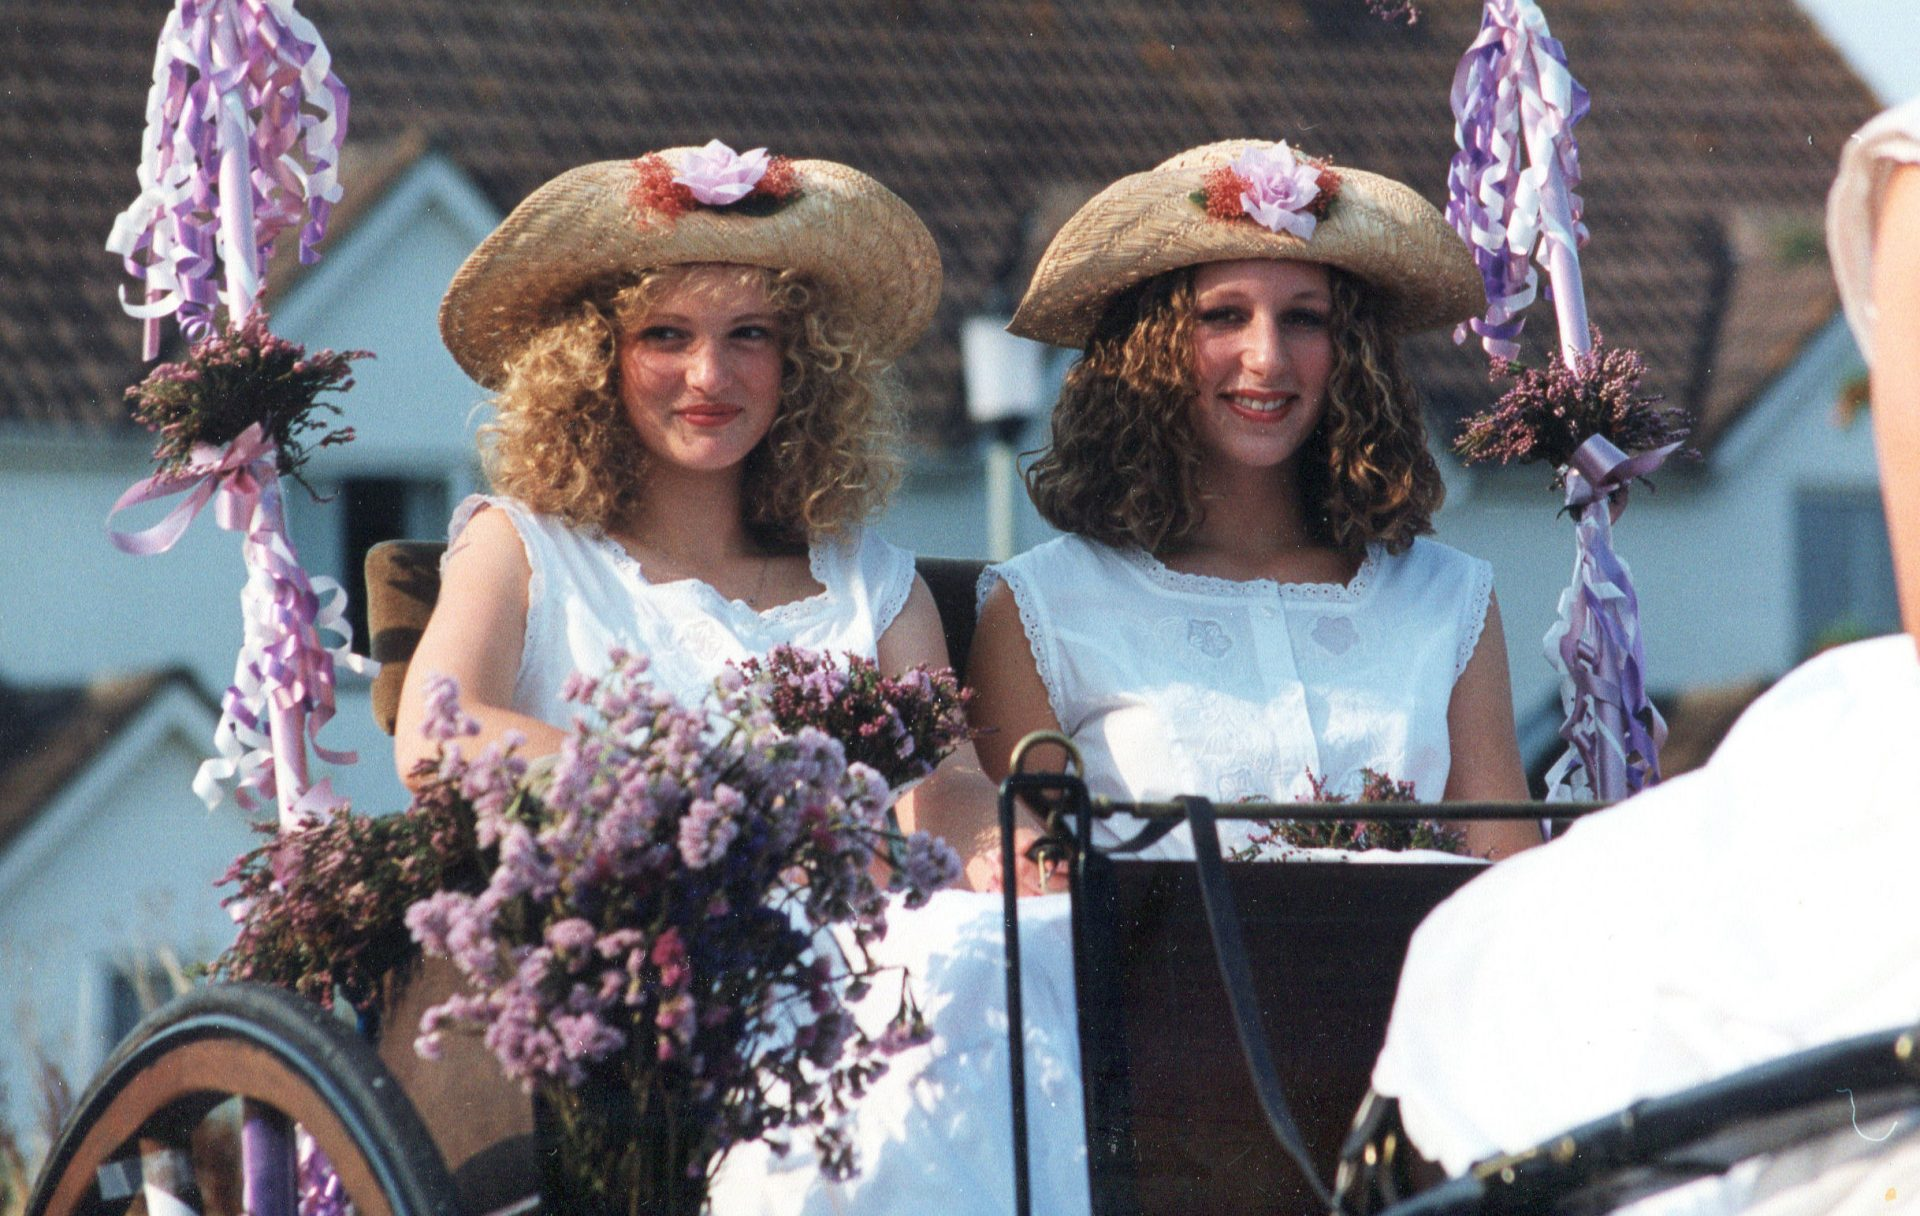 Chagford Carnival sometime in the Nineties.